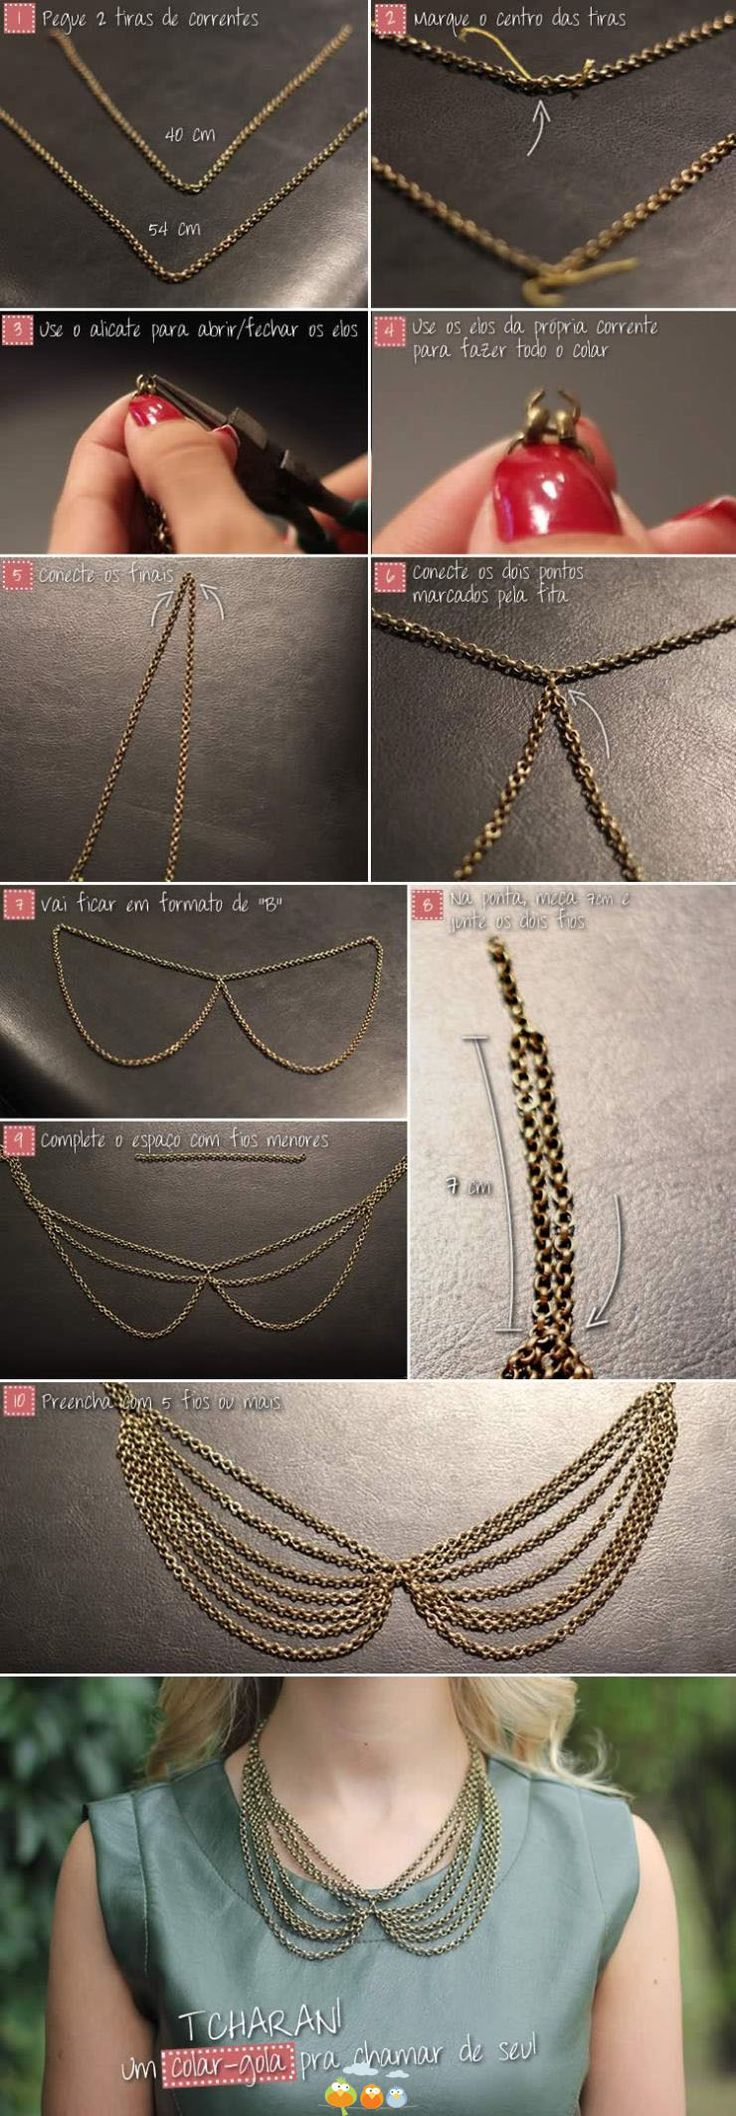 DIY Peter Pan collar necklace with chains     #diy #crafts #jewelry